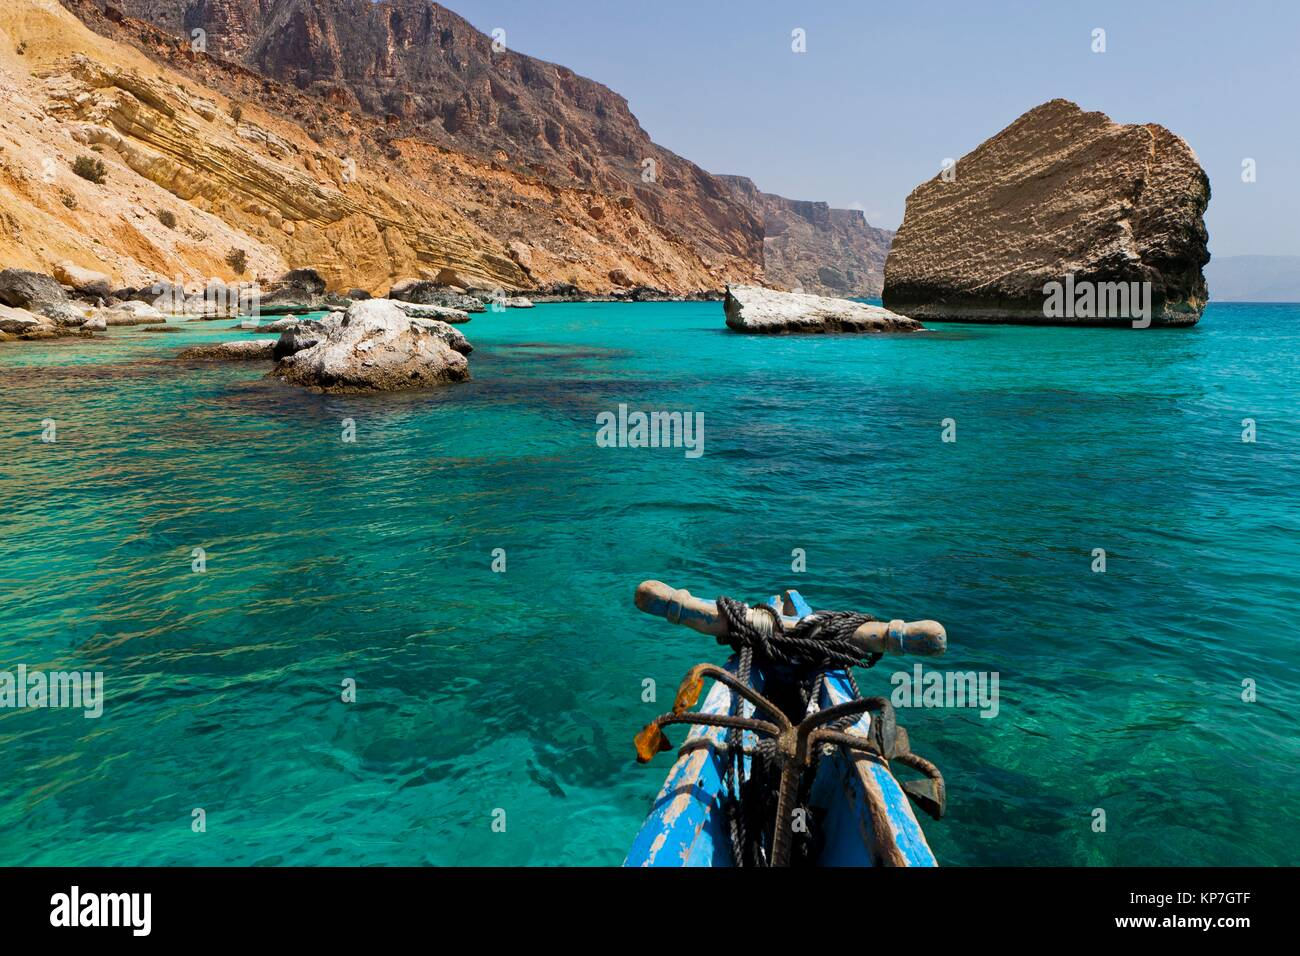 Qalansiyah, Socotra island, listed as World Heritage by UNESCO, Aden Governorate, Yemen, Arabia, West Asia - Stock Image